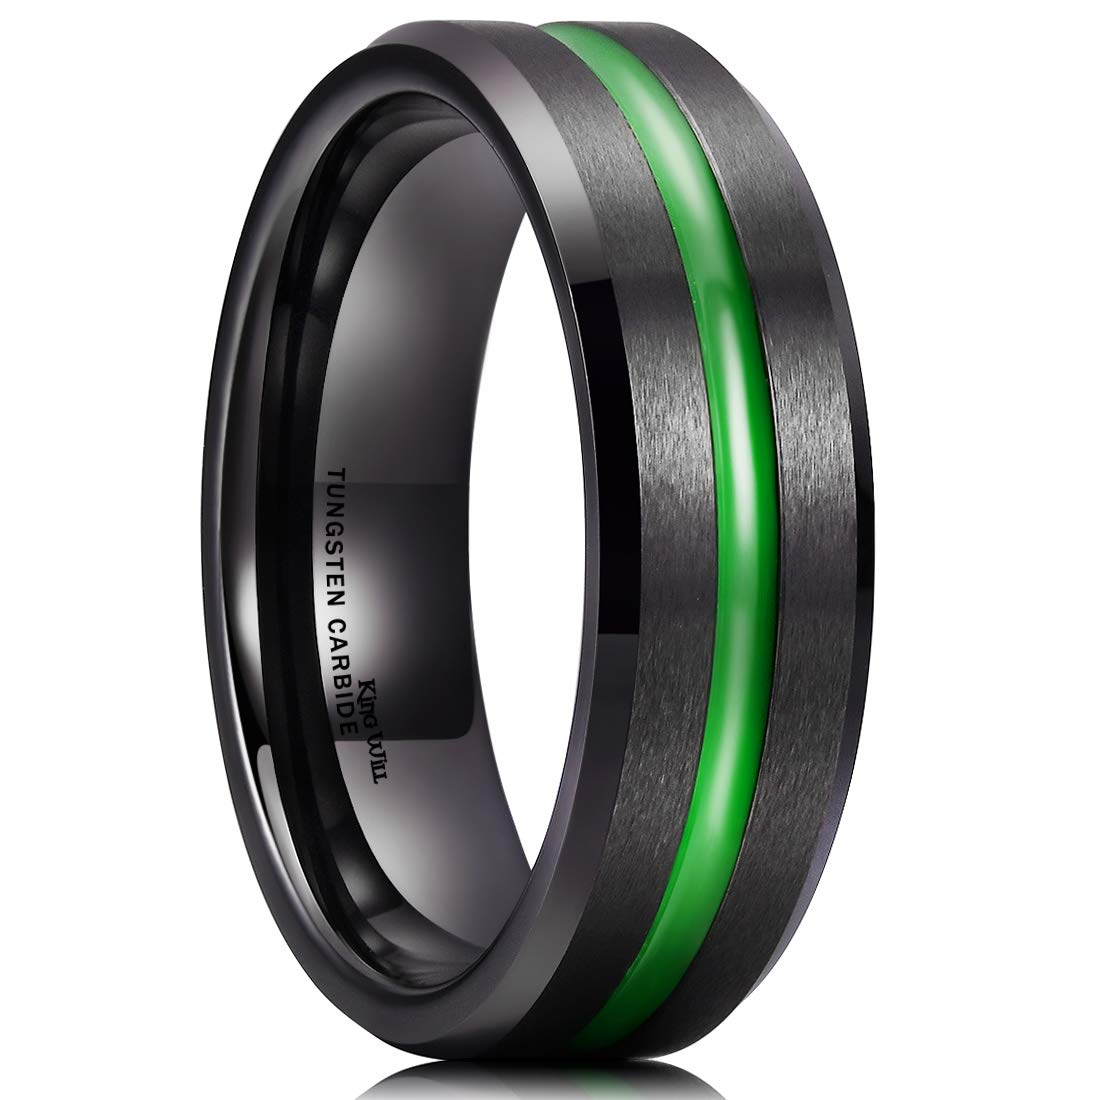 King Will Mens 7mm Green Plated Grooved Finish Tungsten Carbide Ring Green Beveled Edge Wedding Band 9.6